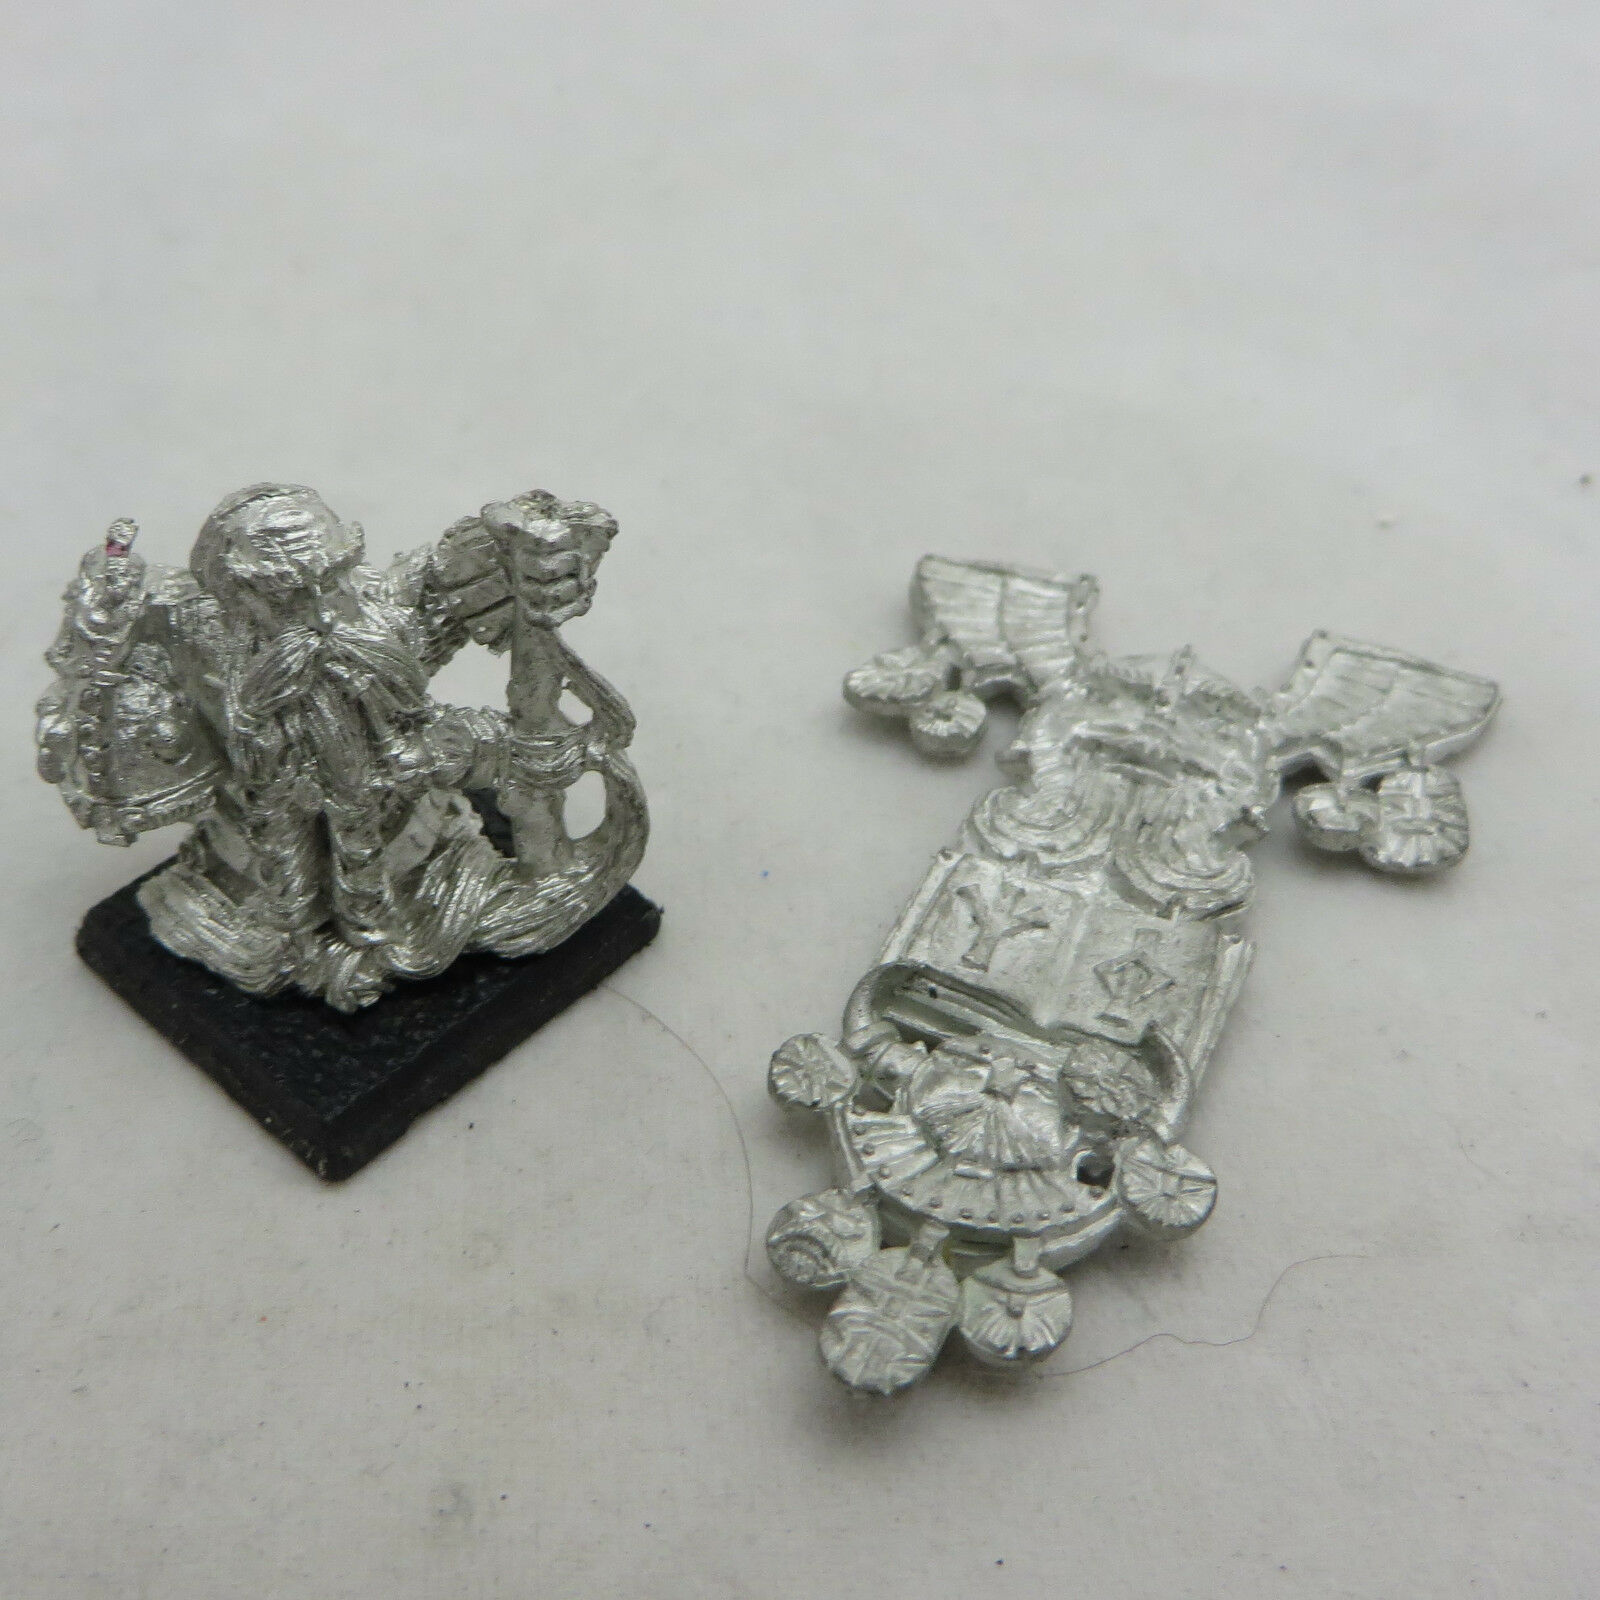 Warhammer Dwarf limited edtition army standard AOS Dispossessed kings war metal